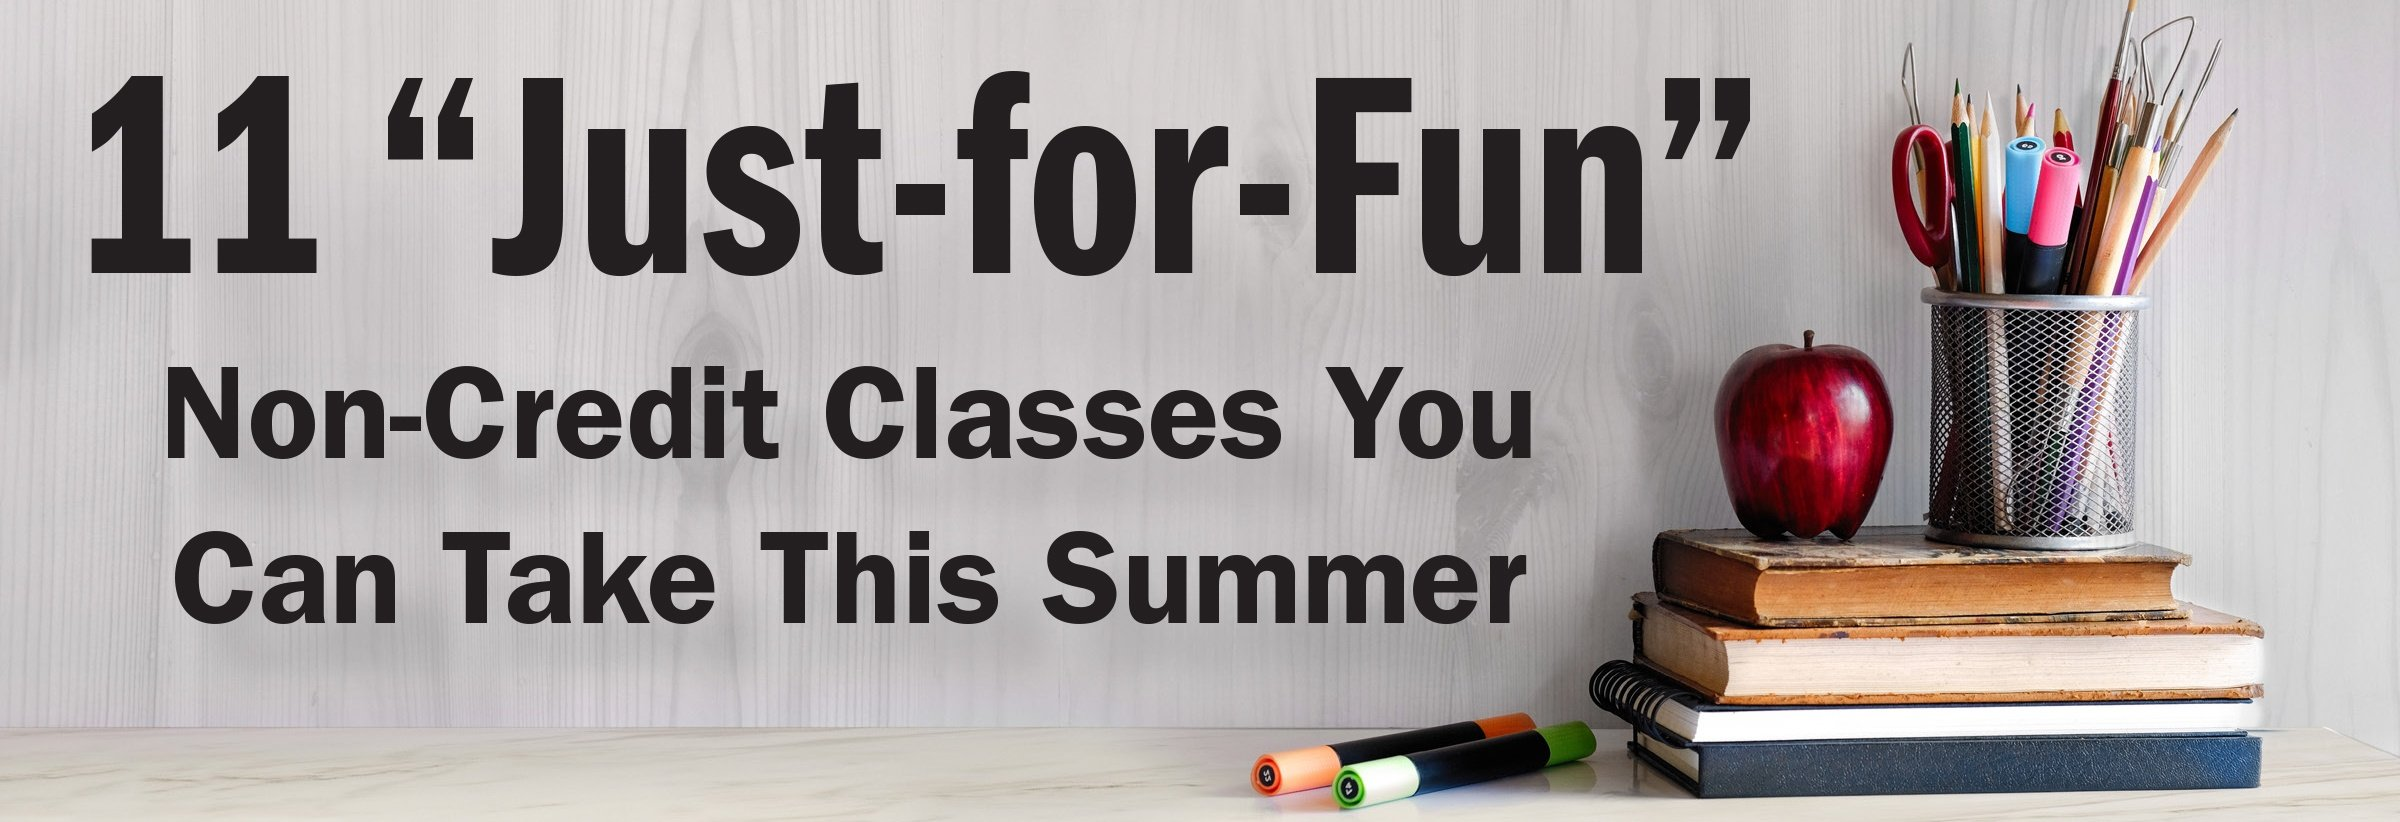 just for fun classes banner